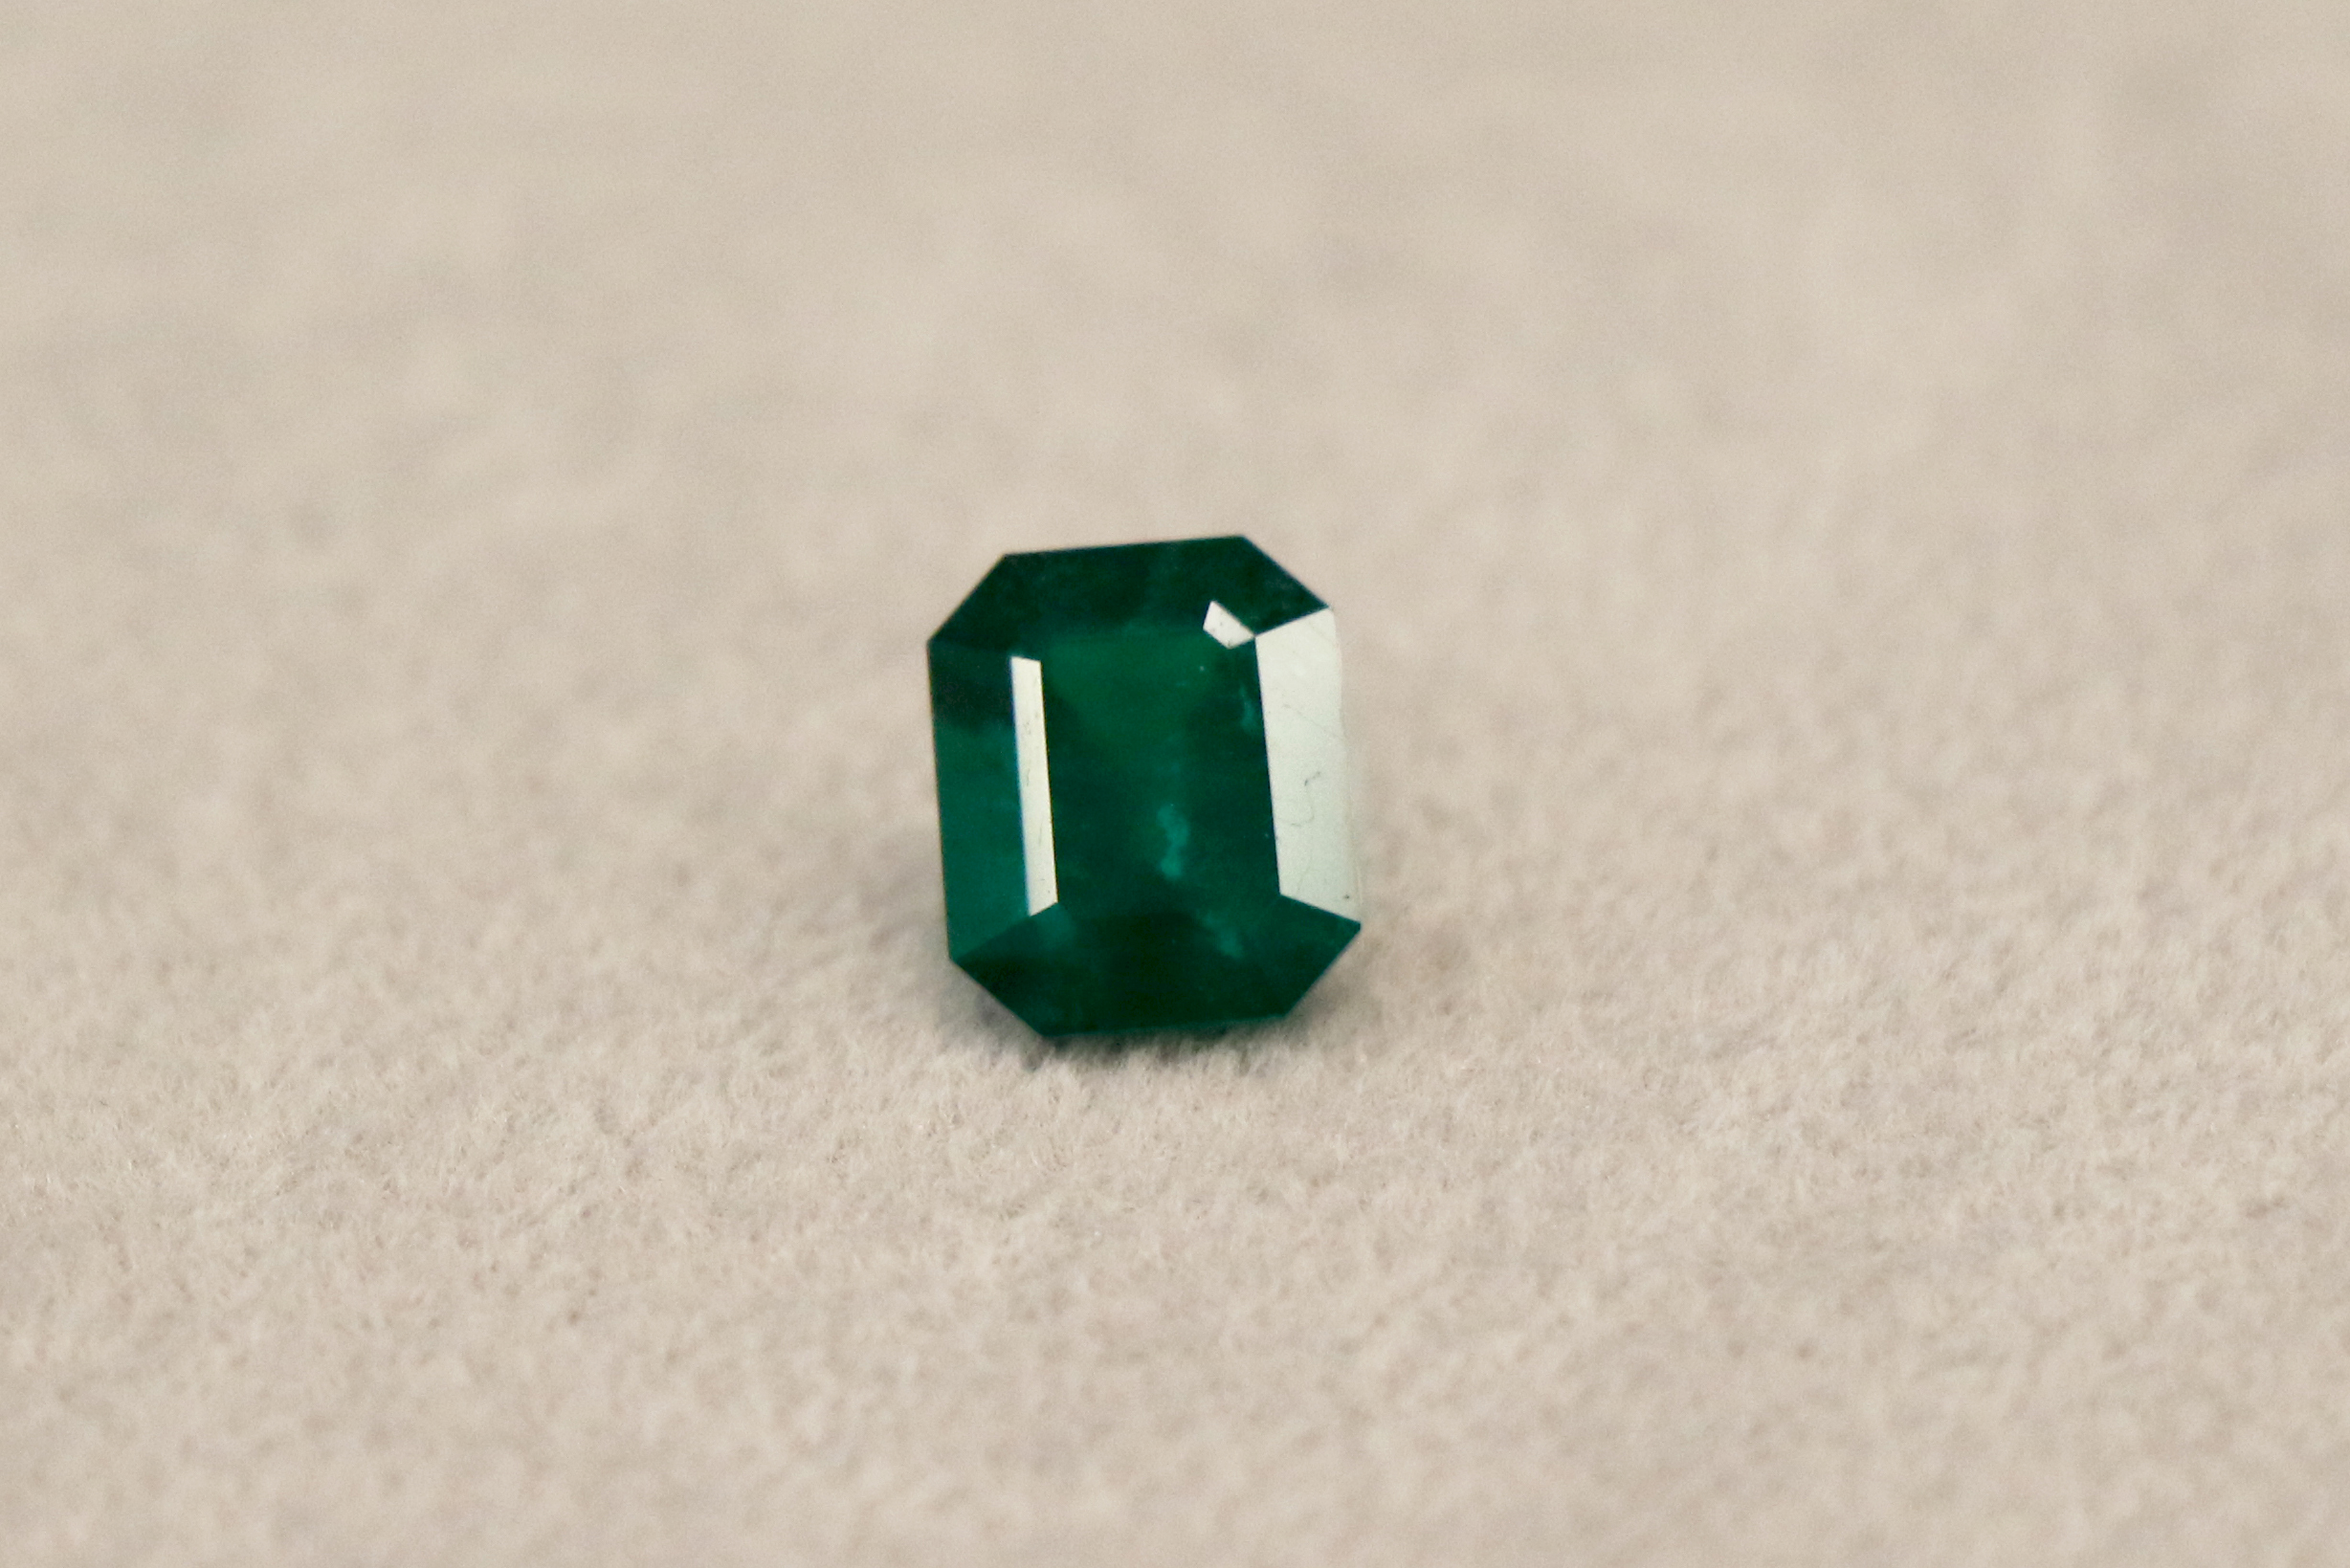 Image of a loose emerald.